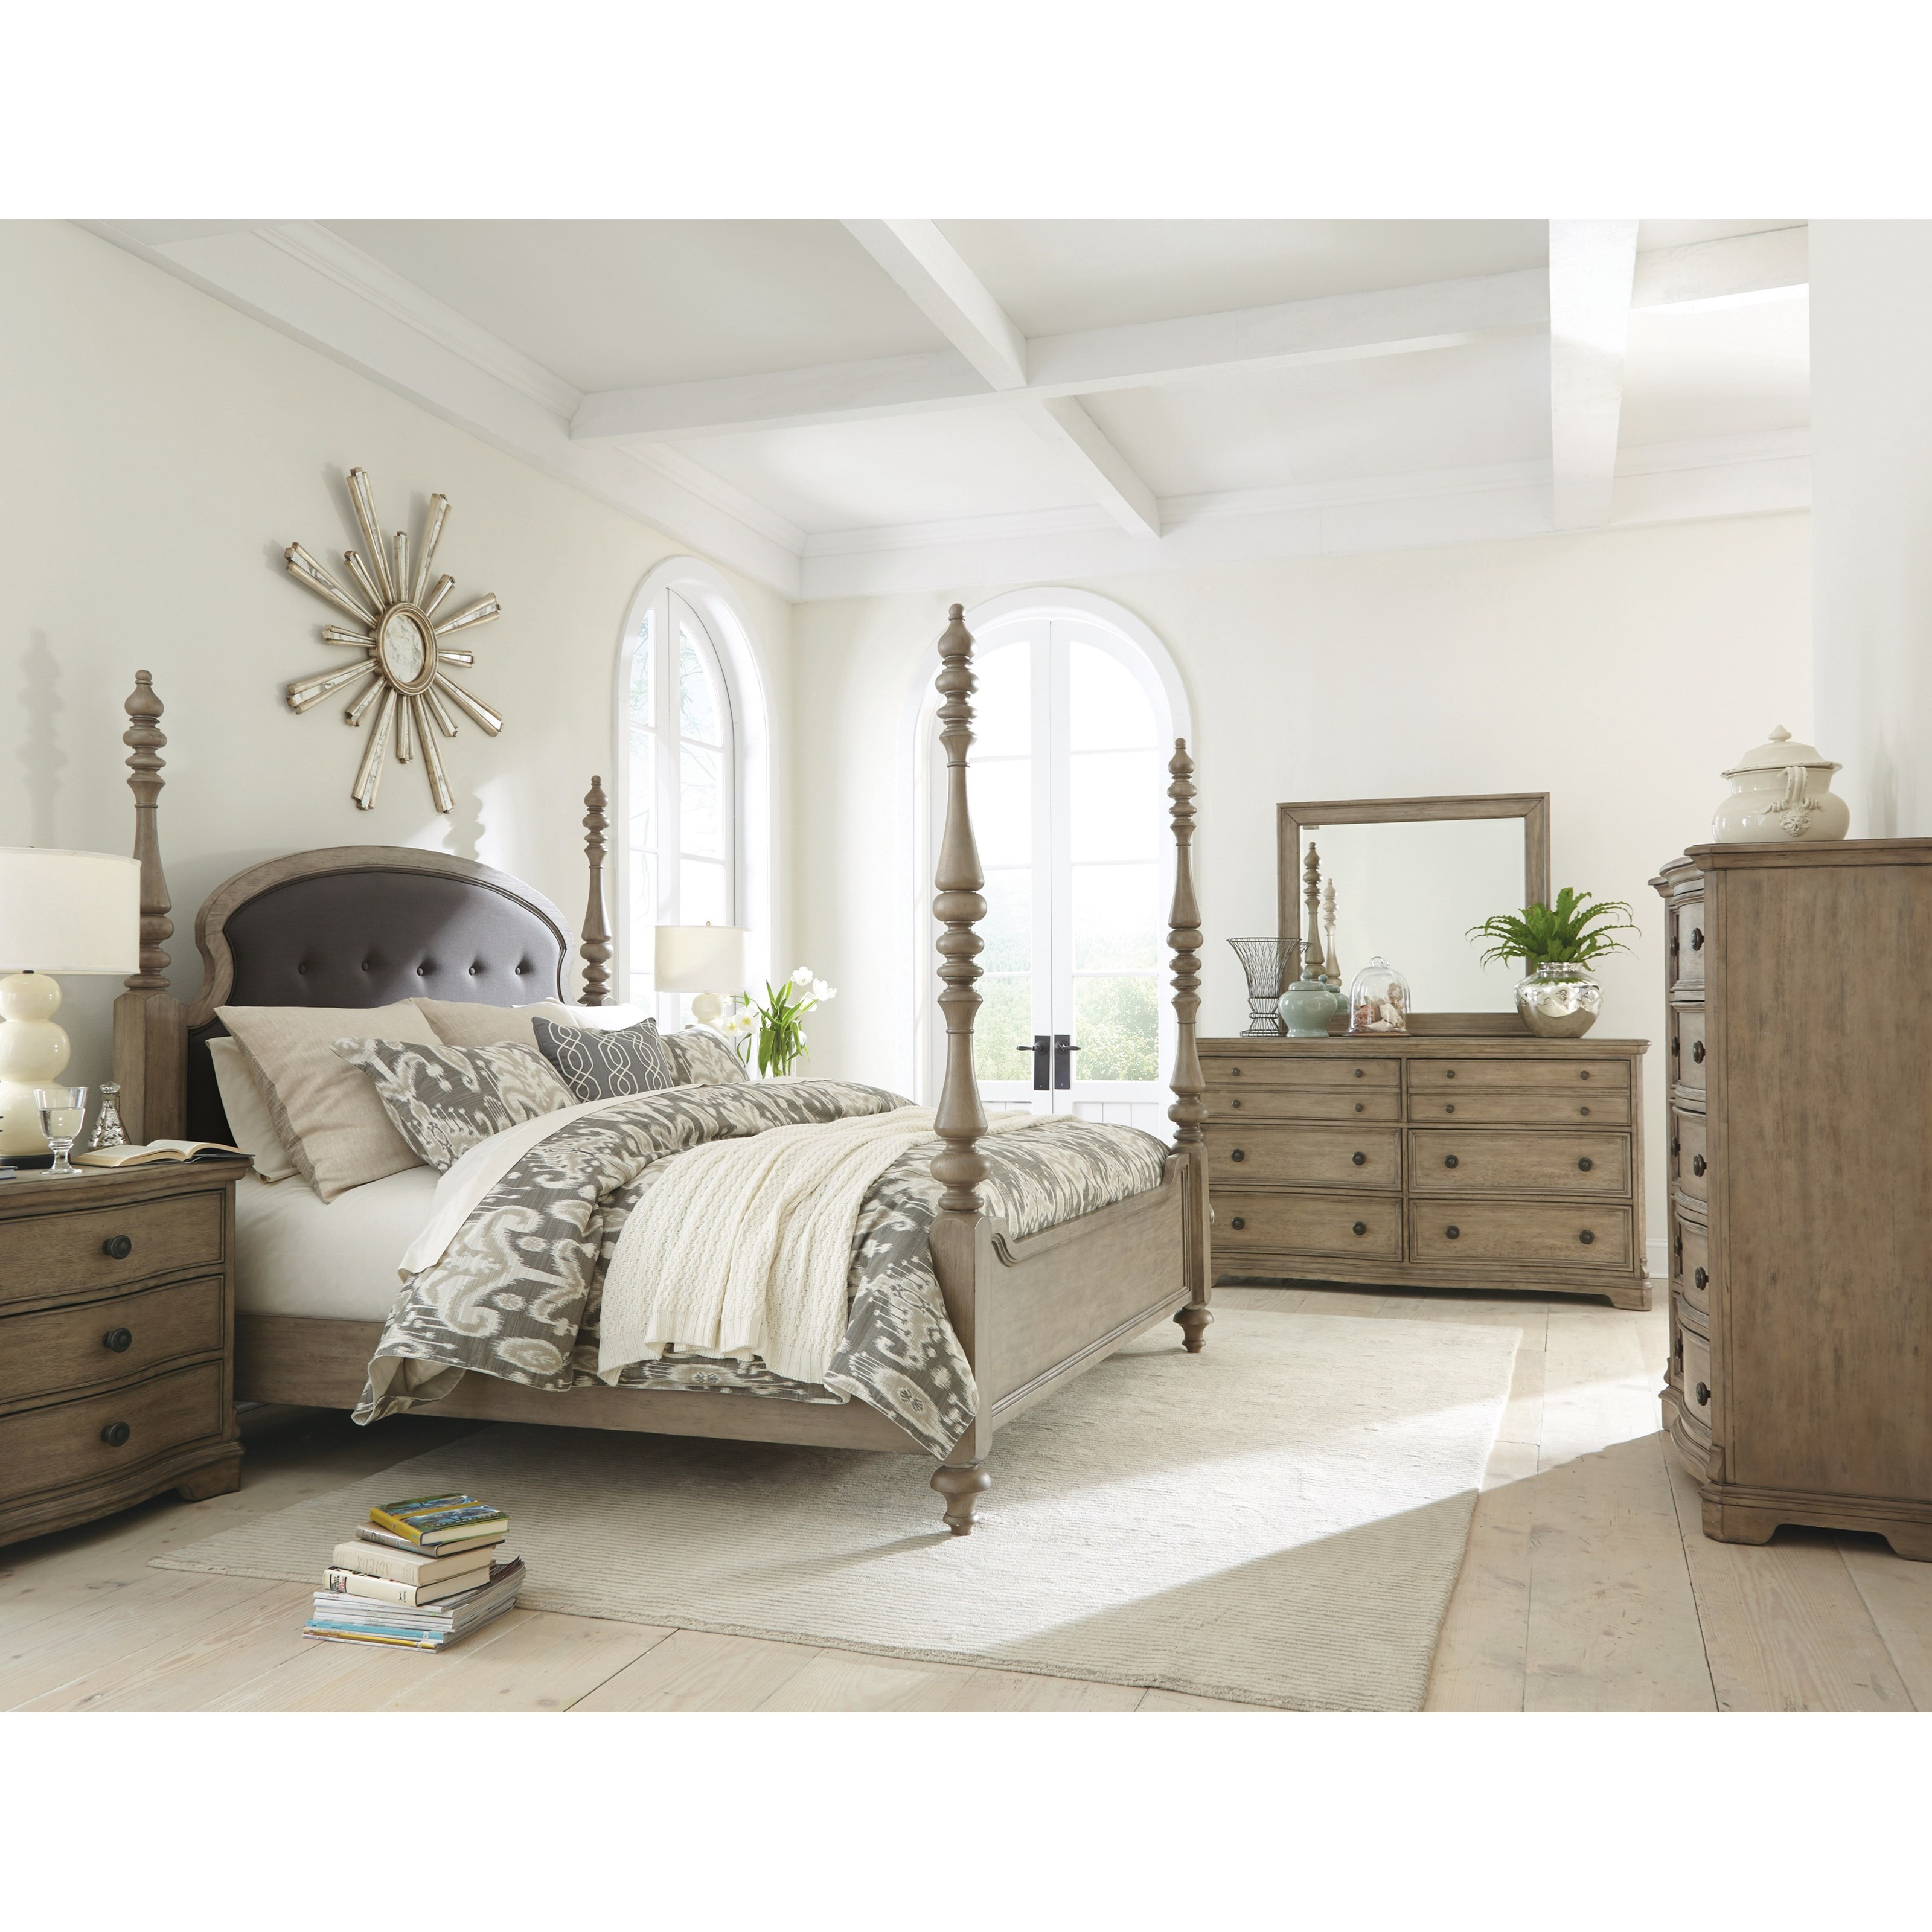 6 Drawer Dresser With Cedar Lined Bottom Drawers By Riverside